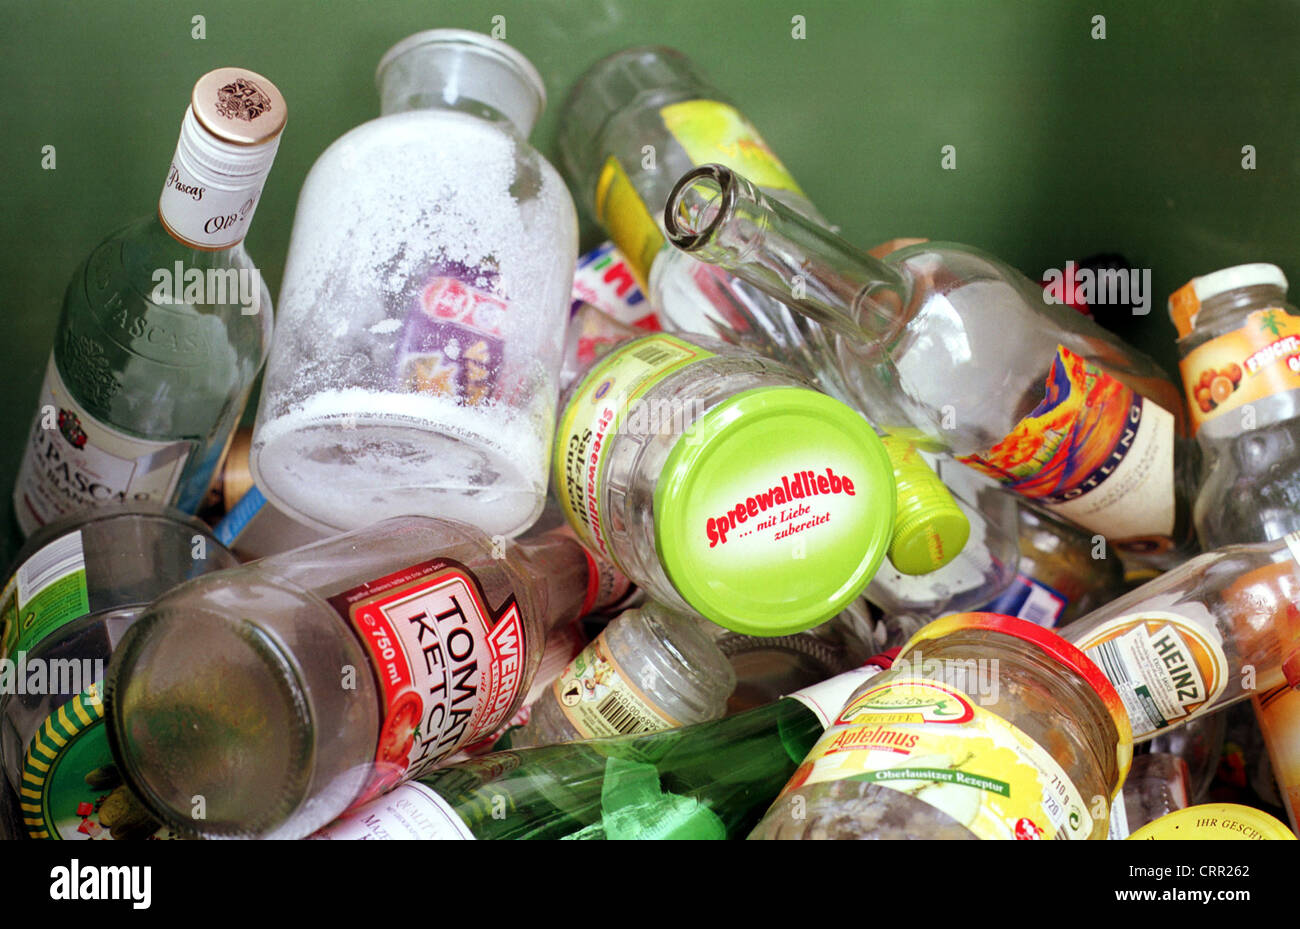 Recyclable glass - Stock Image